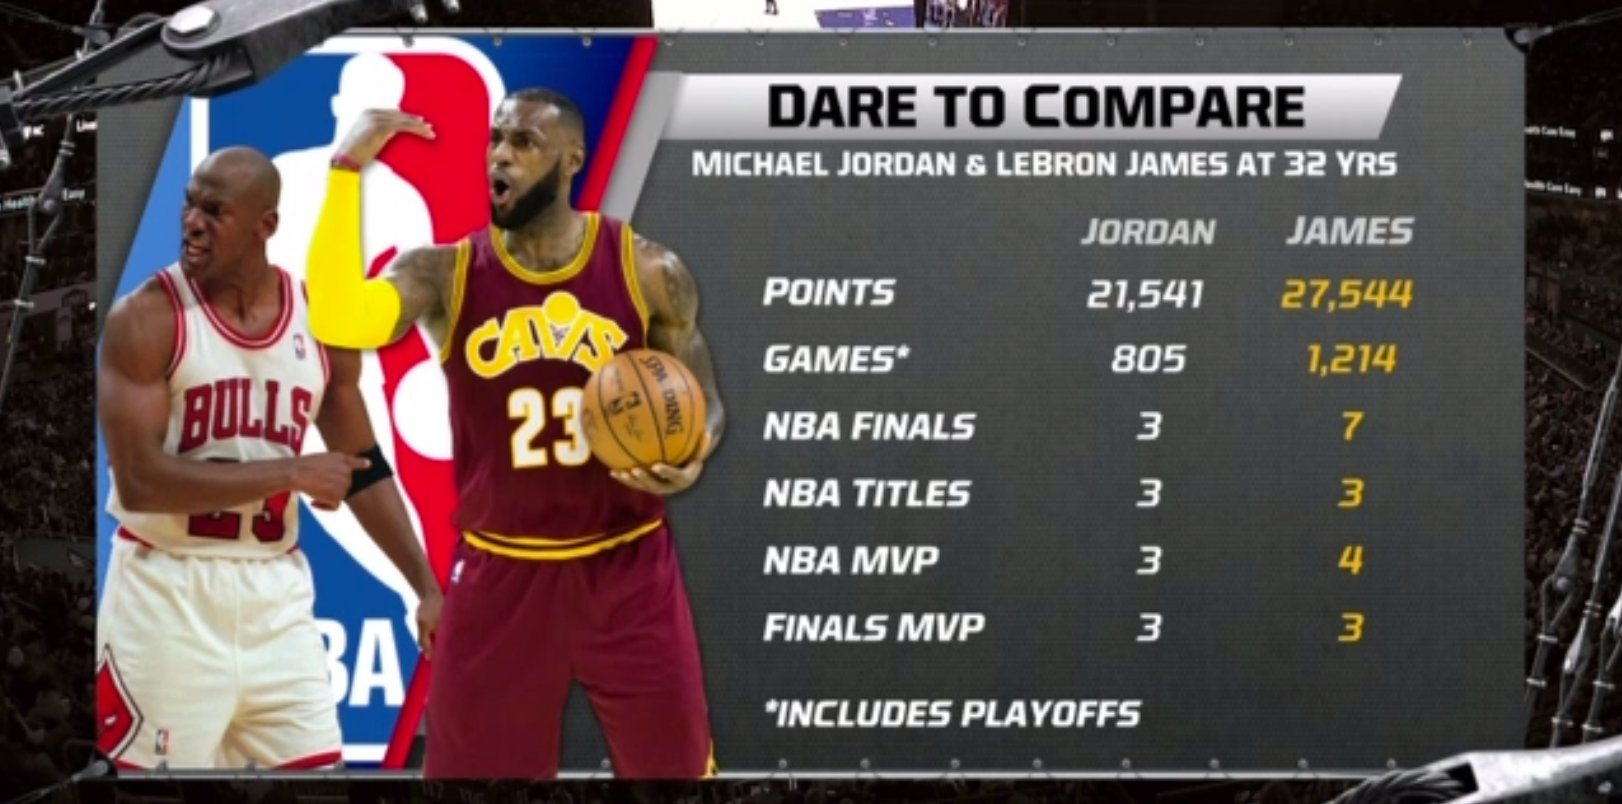 a comparison between the athleticism of michael jordan and lebron james Kobe bryant vs lebron james: comparison  along with legends like michael jordan  that too when it is about who is better in a one-on-one comparison between.